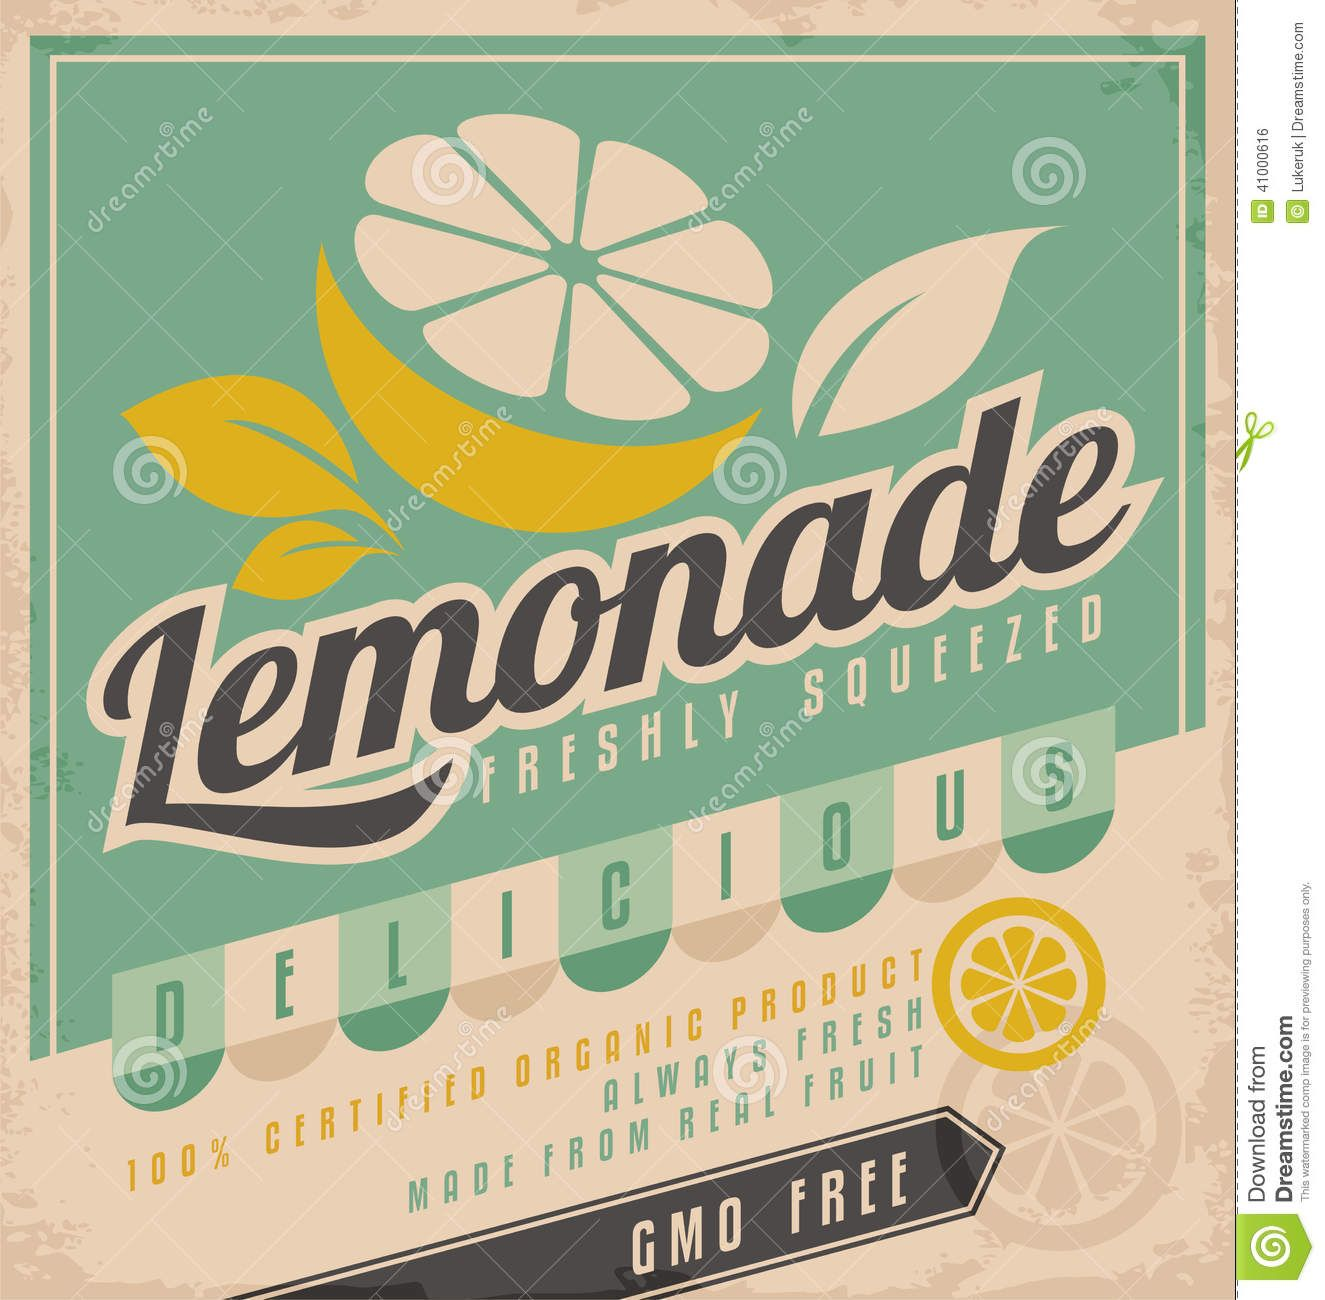 Vintage Lemonade Sign | Design Loves | Pinterest | Lemonade and ...